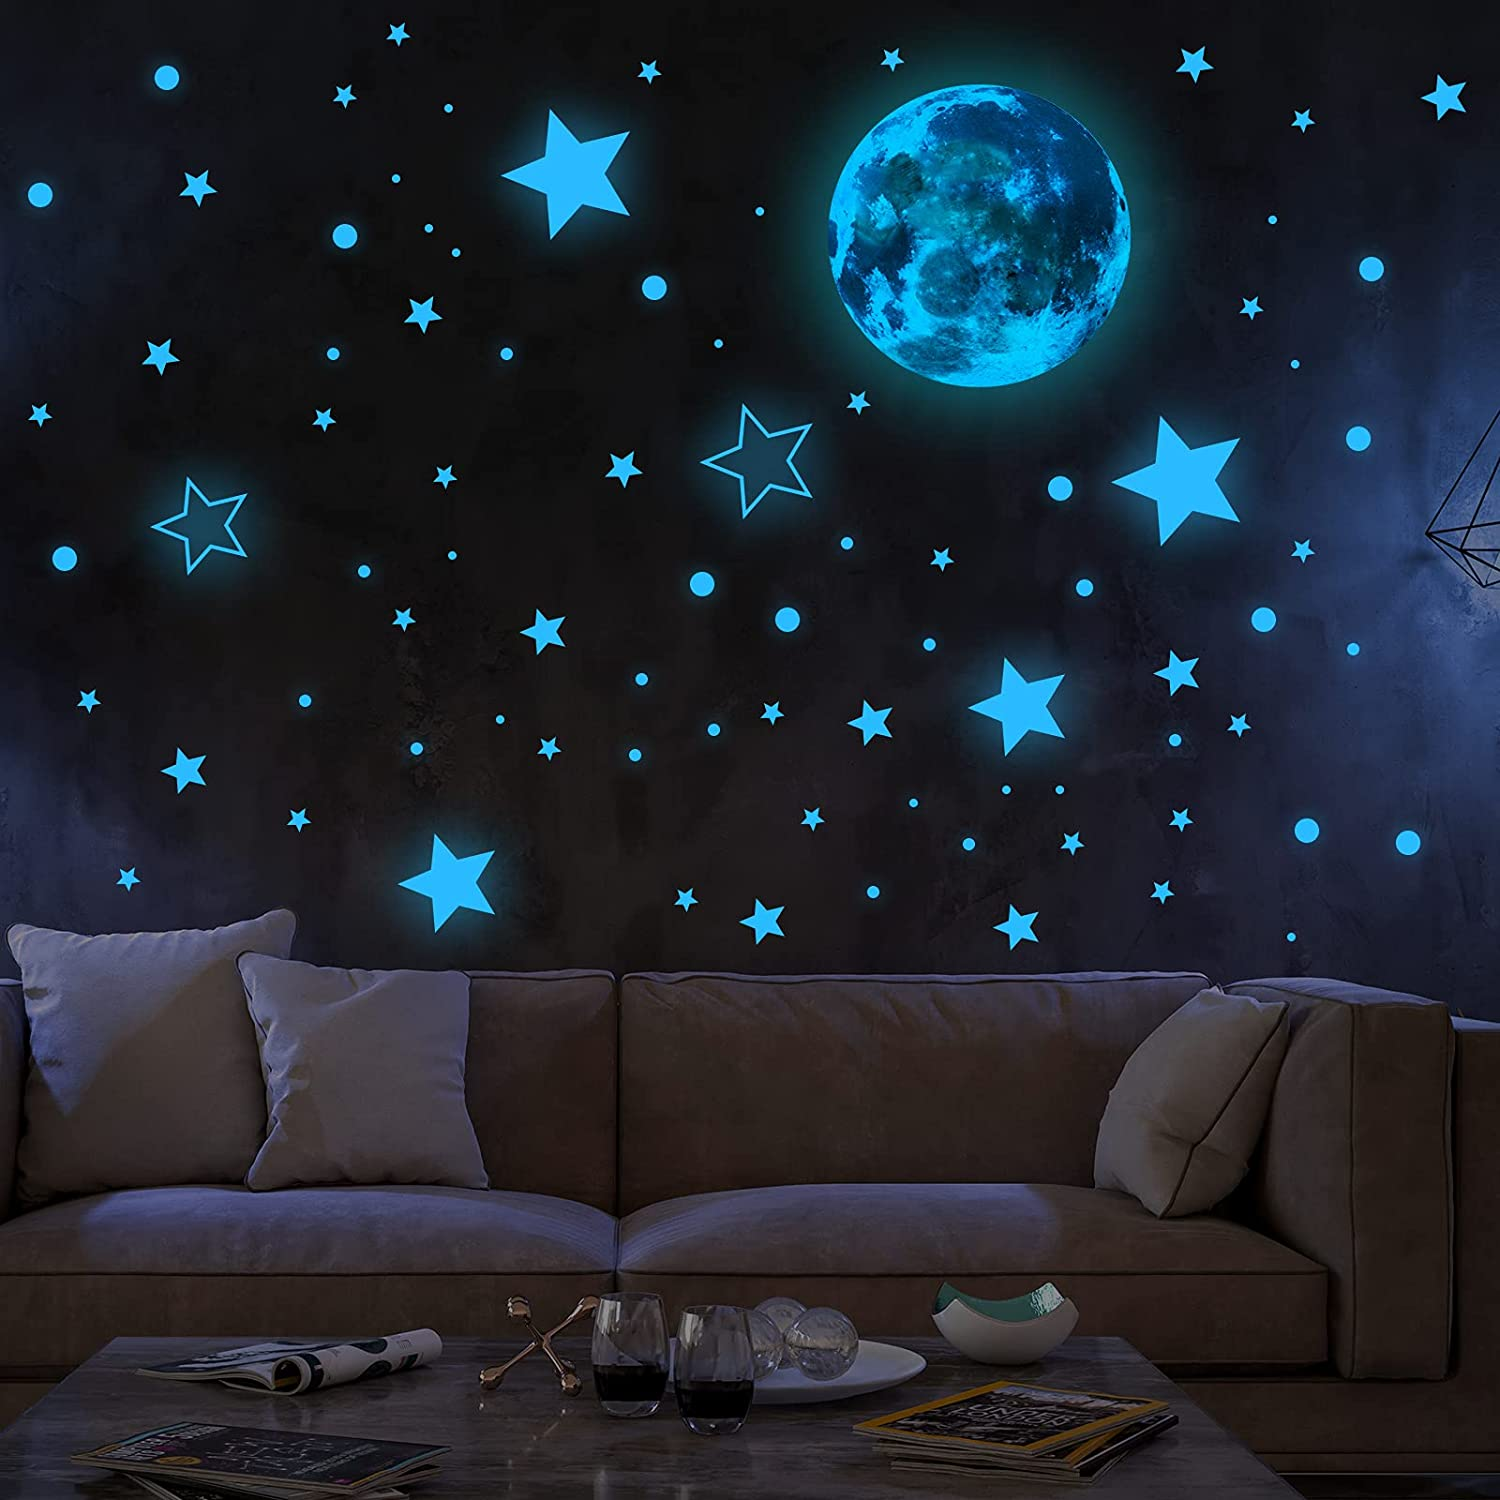 TRYAH Glow in The Dark Stars for Ceiling Decor, 1050 Pcs Glowing Wall Decals Decor Stickers Set, Dark Stars/Moon Stick Wall Decals for Home Party Kids Room(Fluorescent Blue)